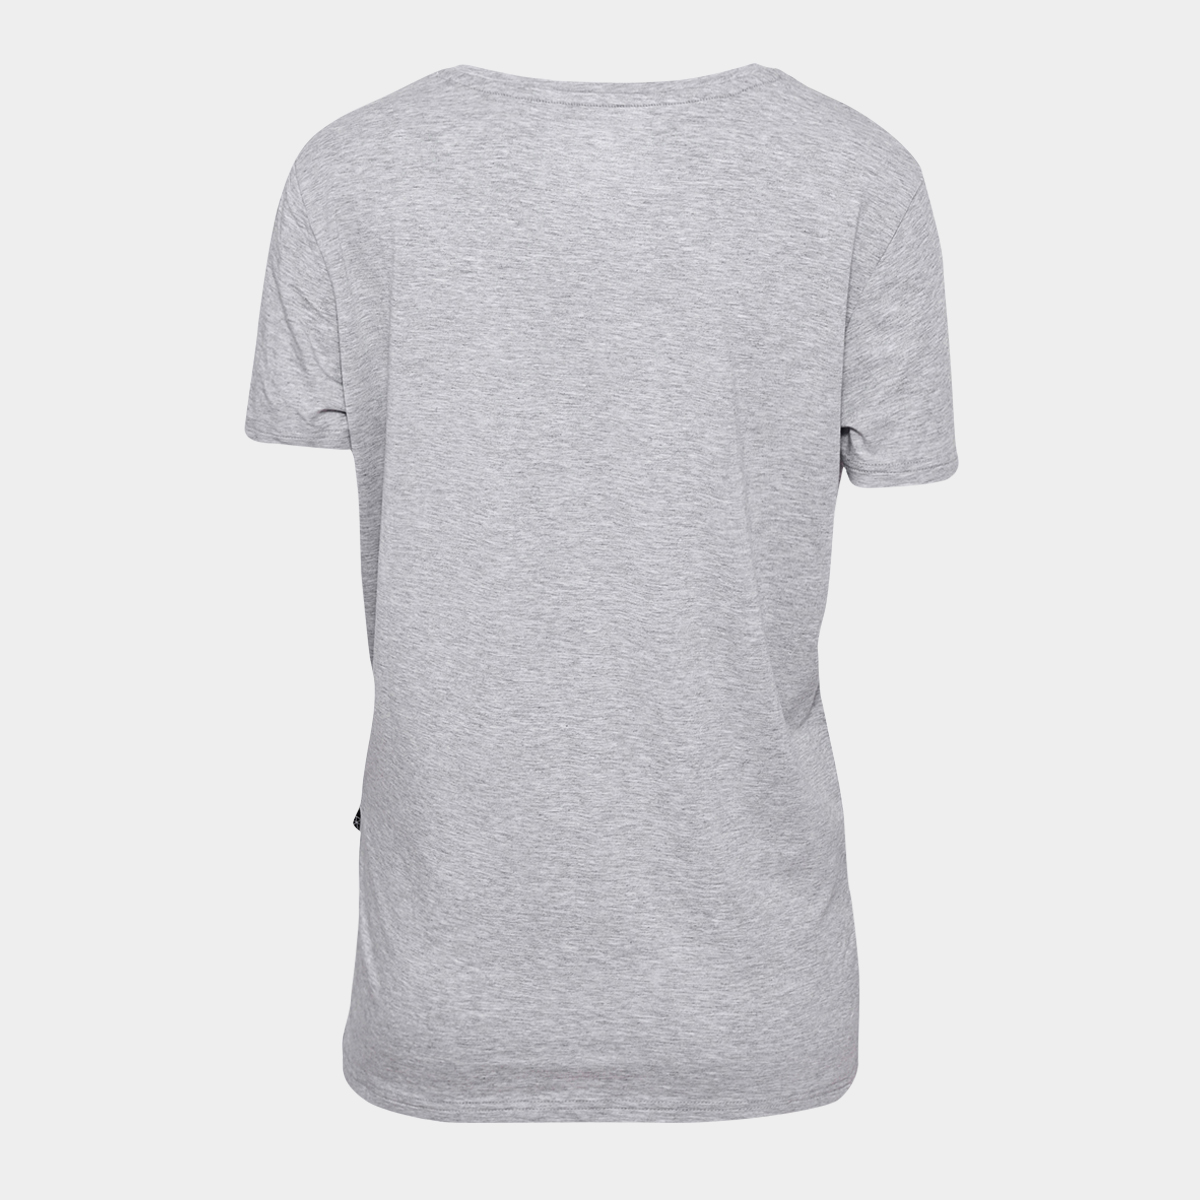 Grå basic bambus t shirt